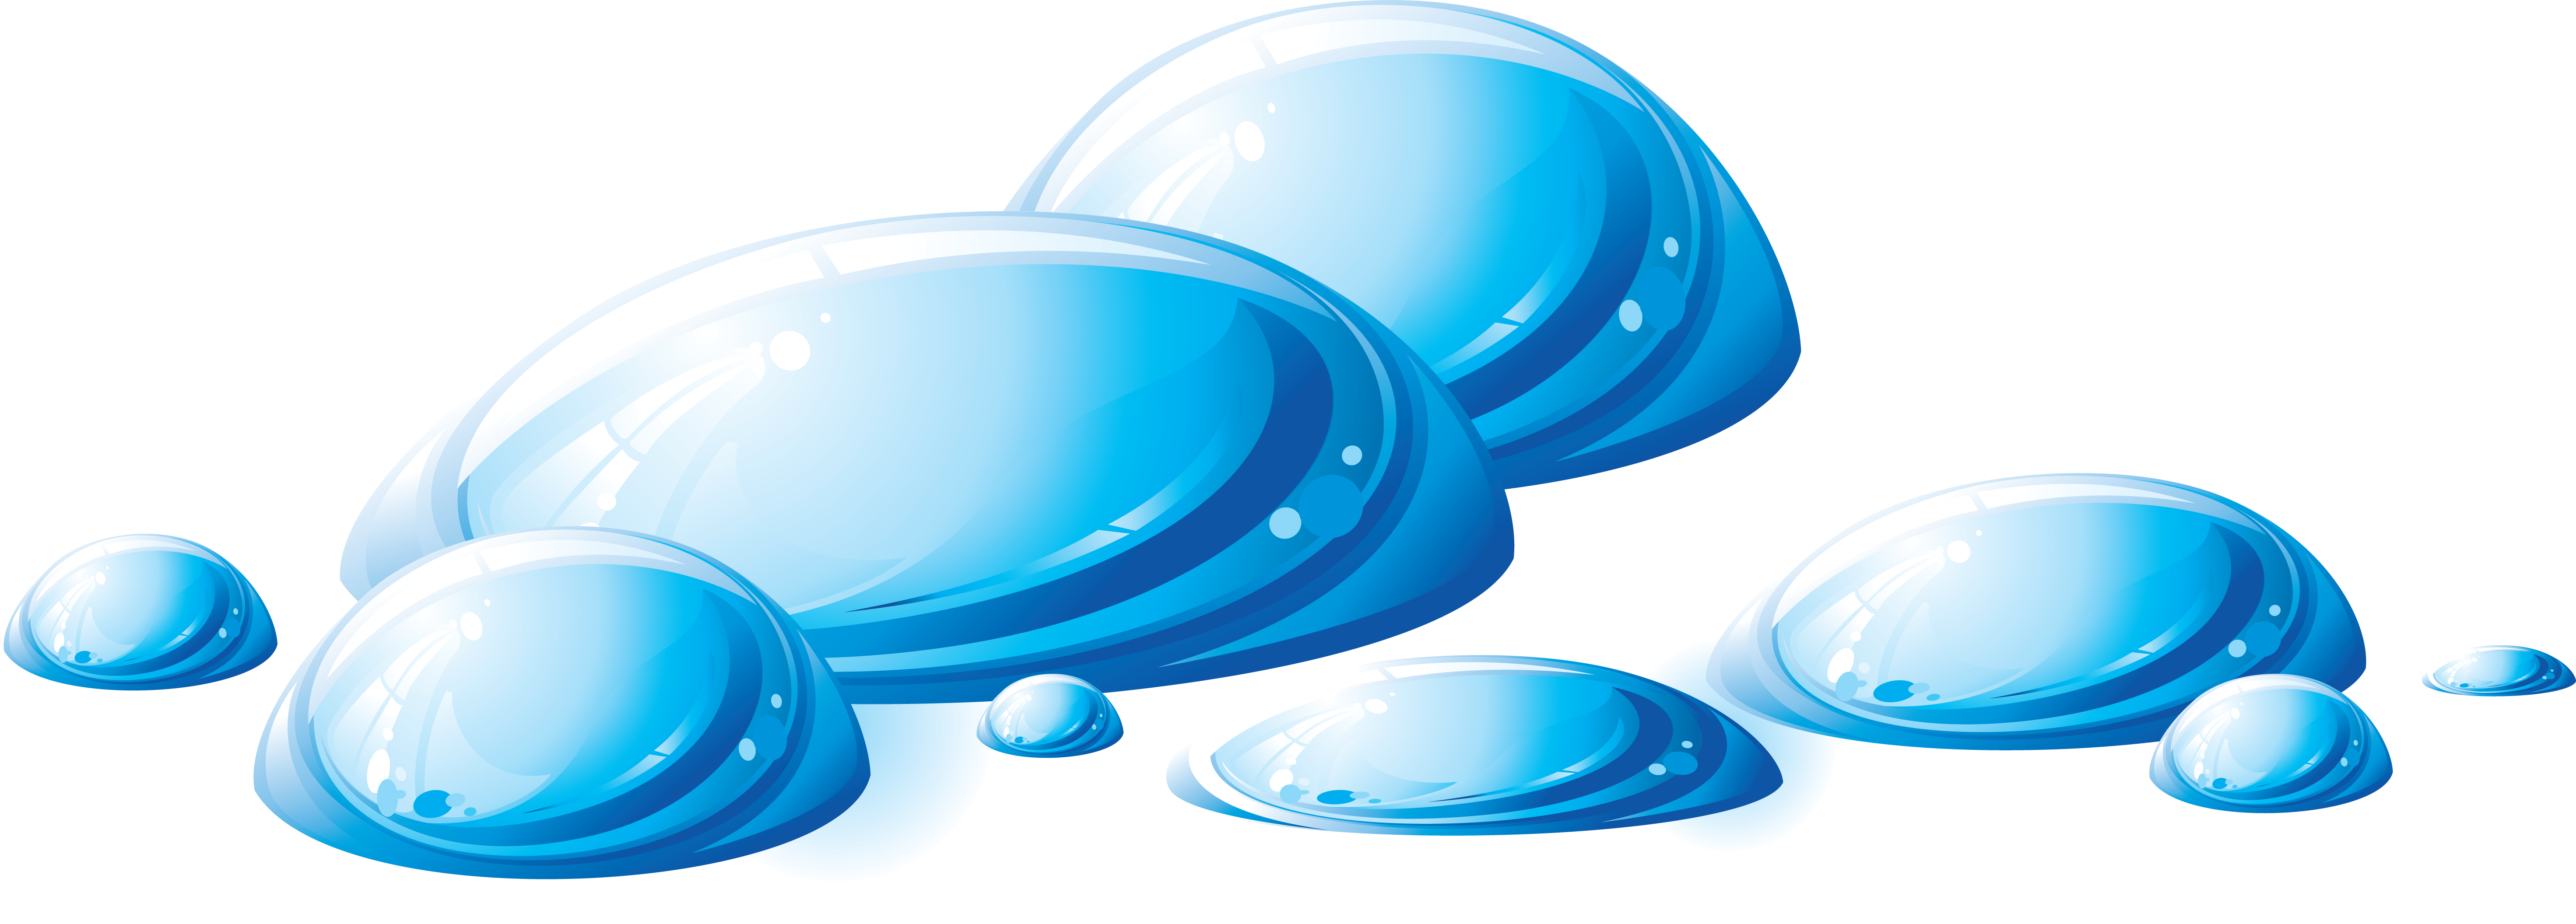 5886x2112 Water Droplets Clipart Single Drop